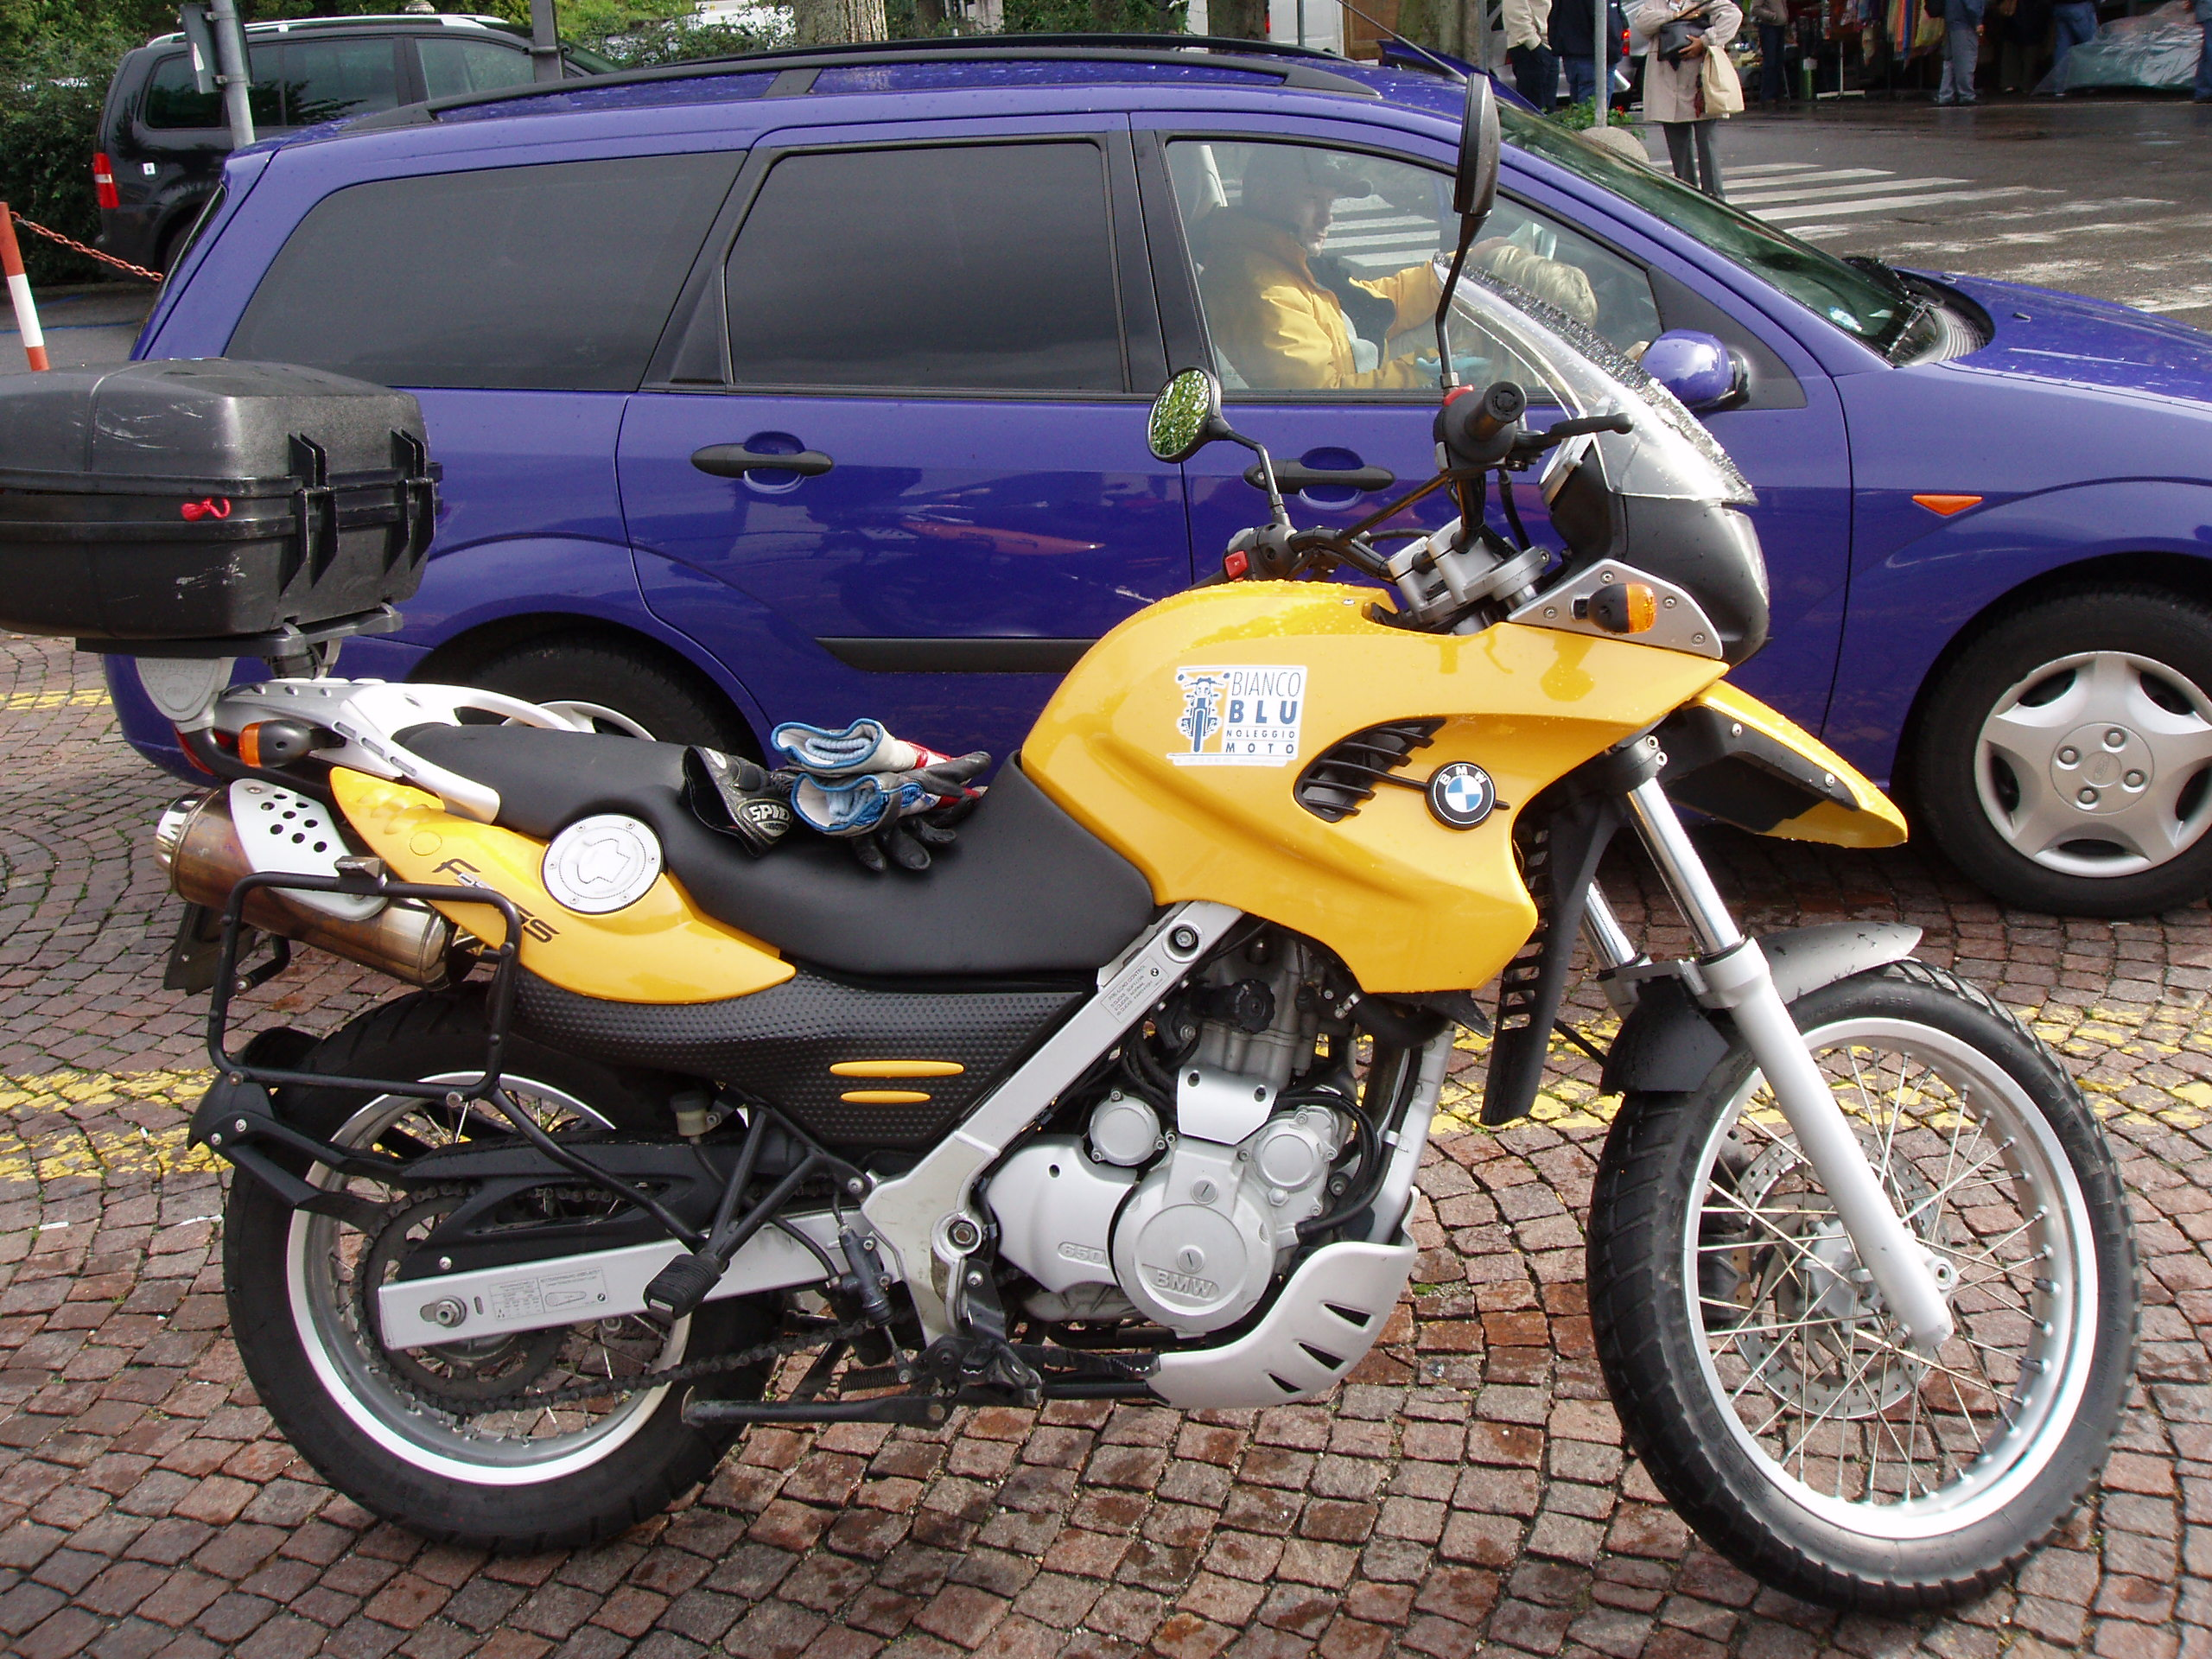 BMW F650GS 2003 images #7138